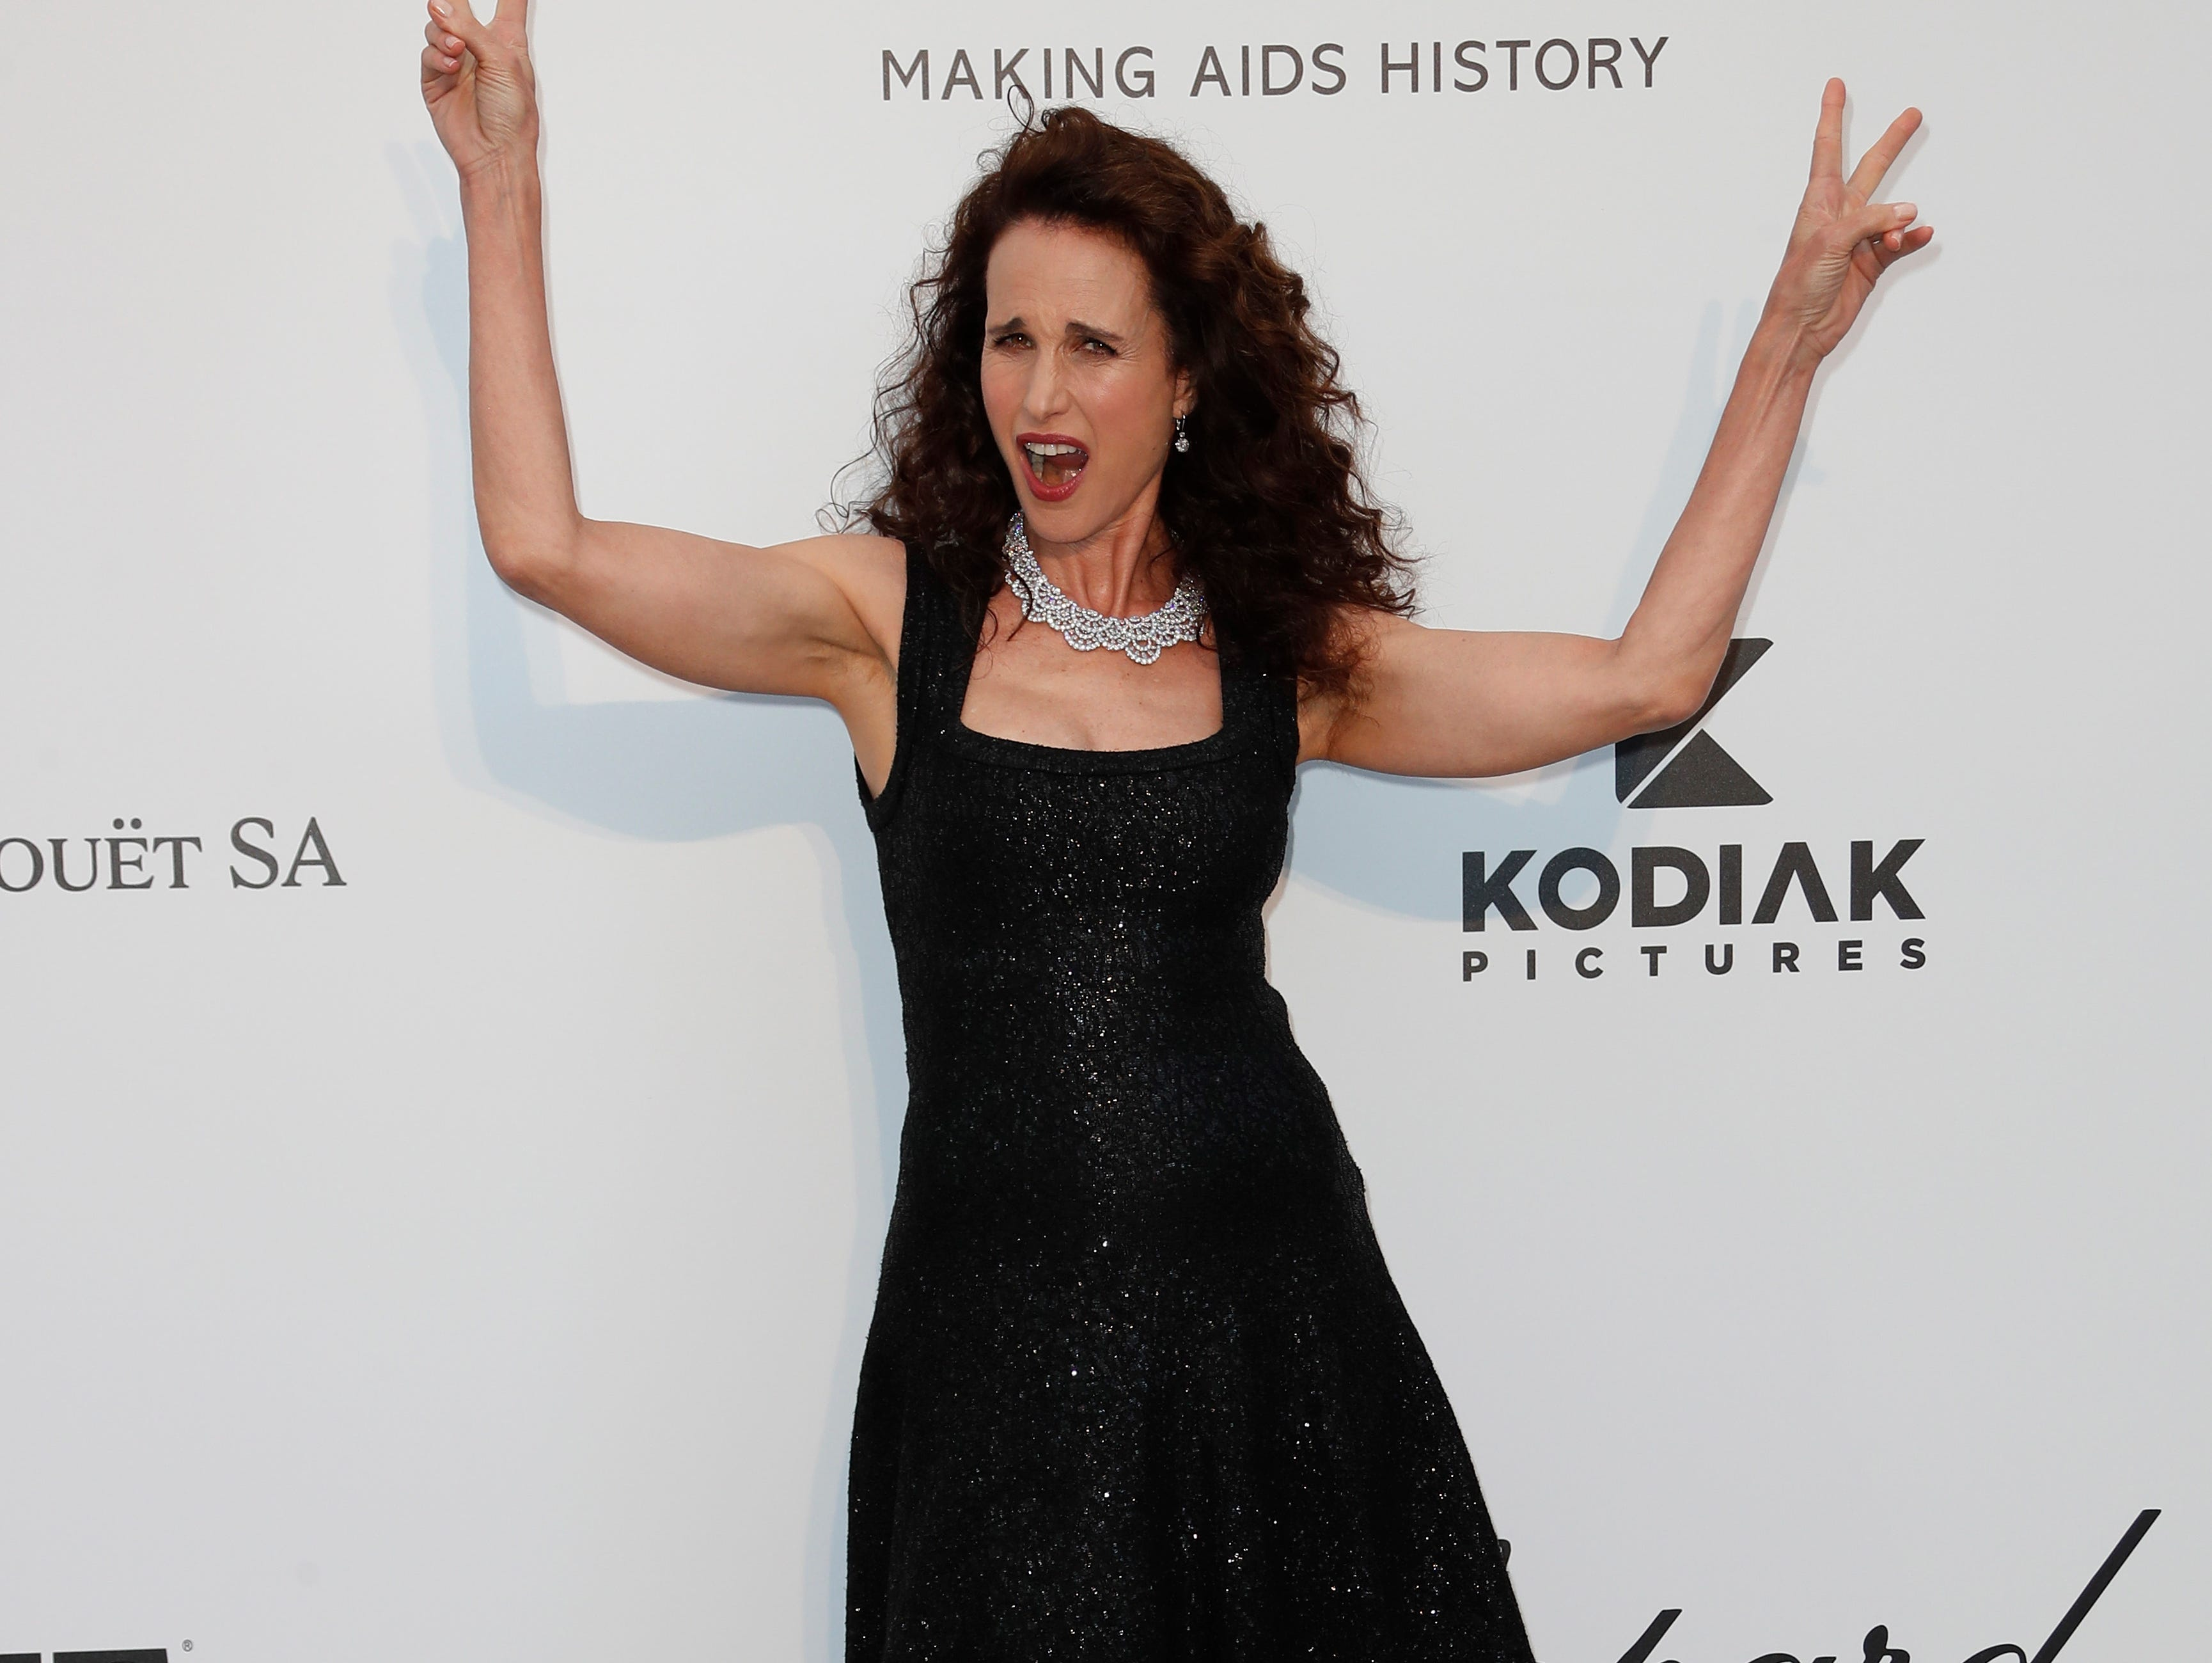 epa07595099 US actress Andie MacDowell attends the Cinema Against AIDS amfAR gala 2019 held at the Hotel du Cap, Eden Roc in Cap d'Antibes, France, 23 May 2019, within the scope of the 72nd annual Cannes Film Festival that runs from 14 to 25 May.  EPA-EFE/SEBASTIEN NOGIER